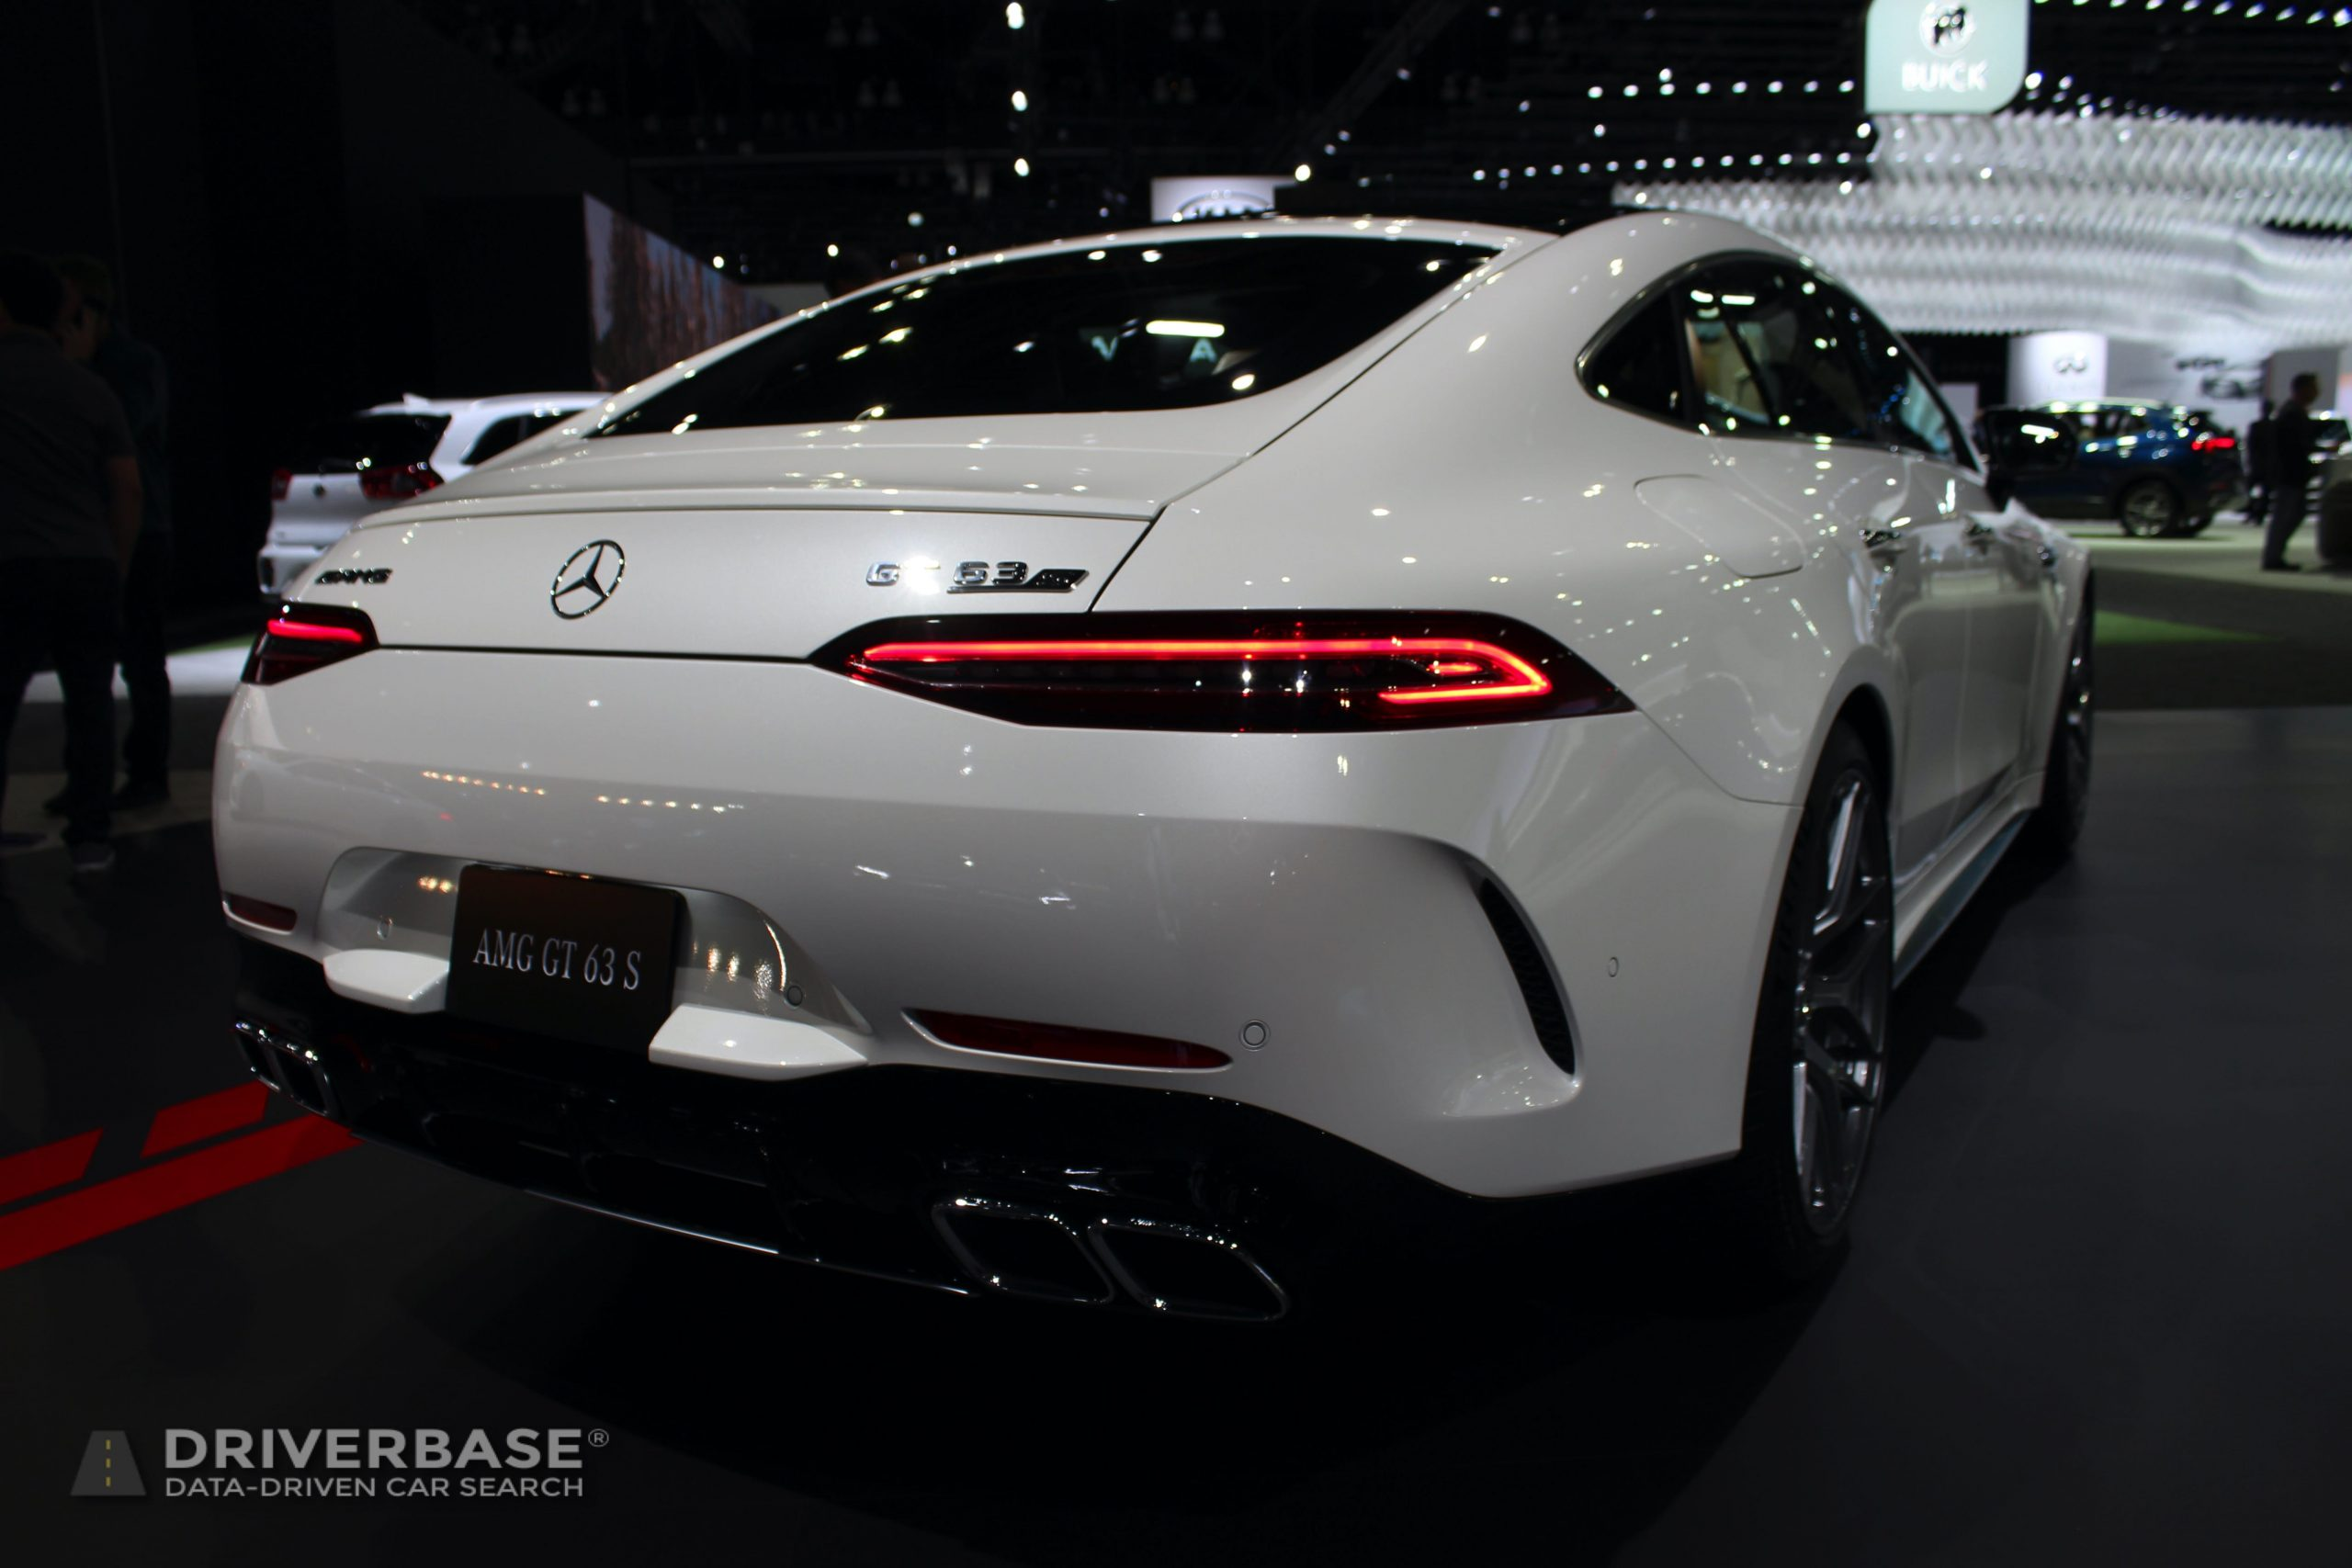 2020 Mercedes-Benz AMG GT 63 S at the 2019 Los Angeles Auto Show